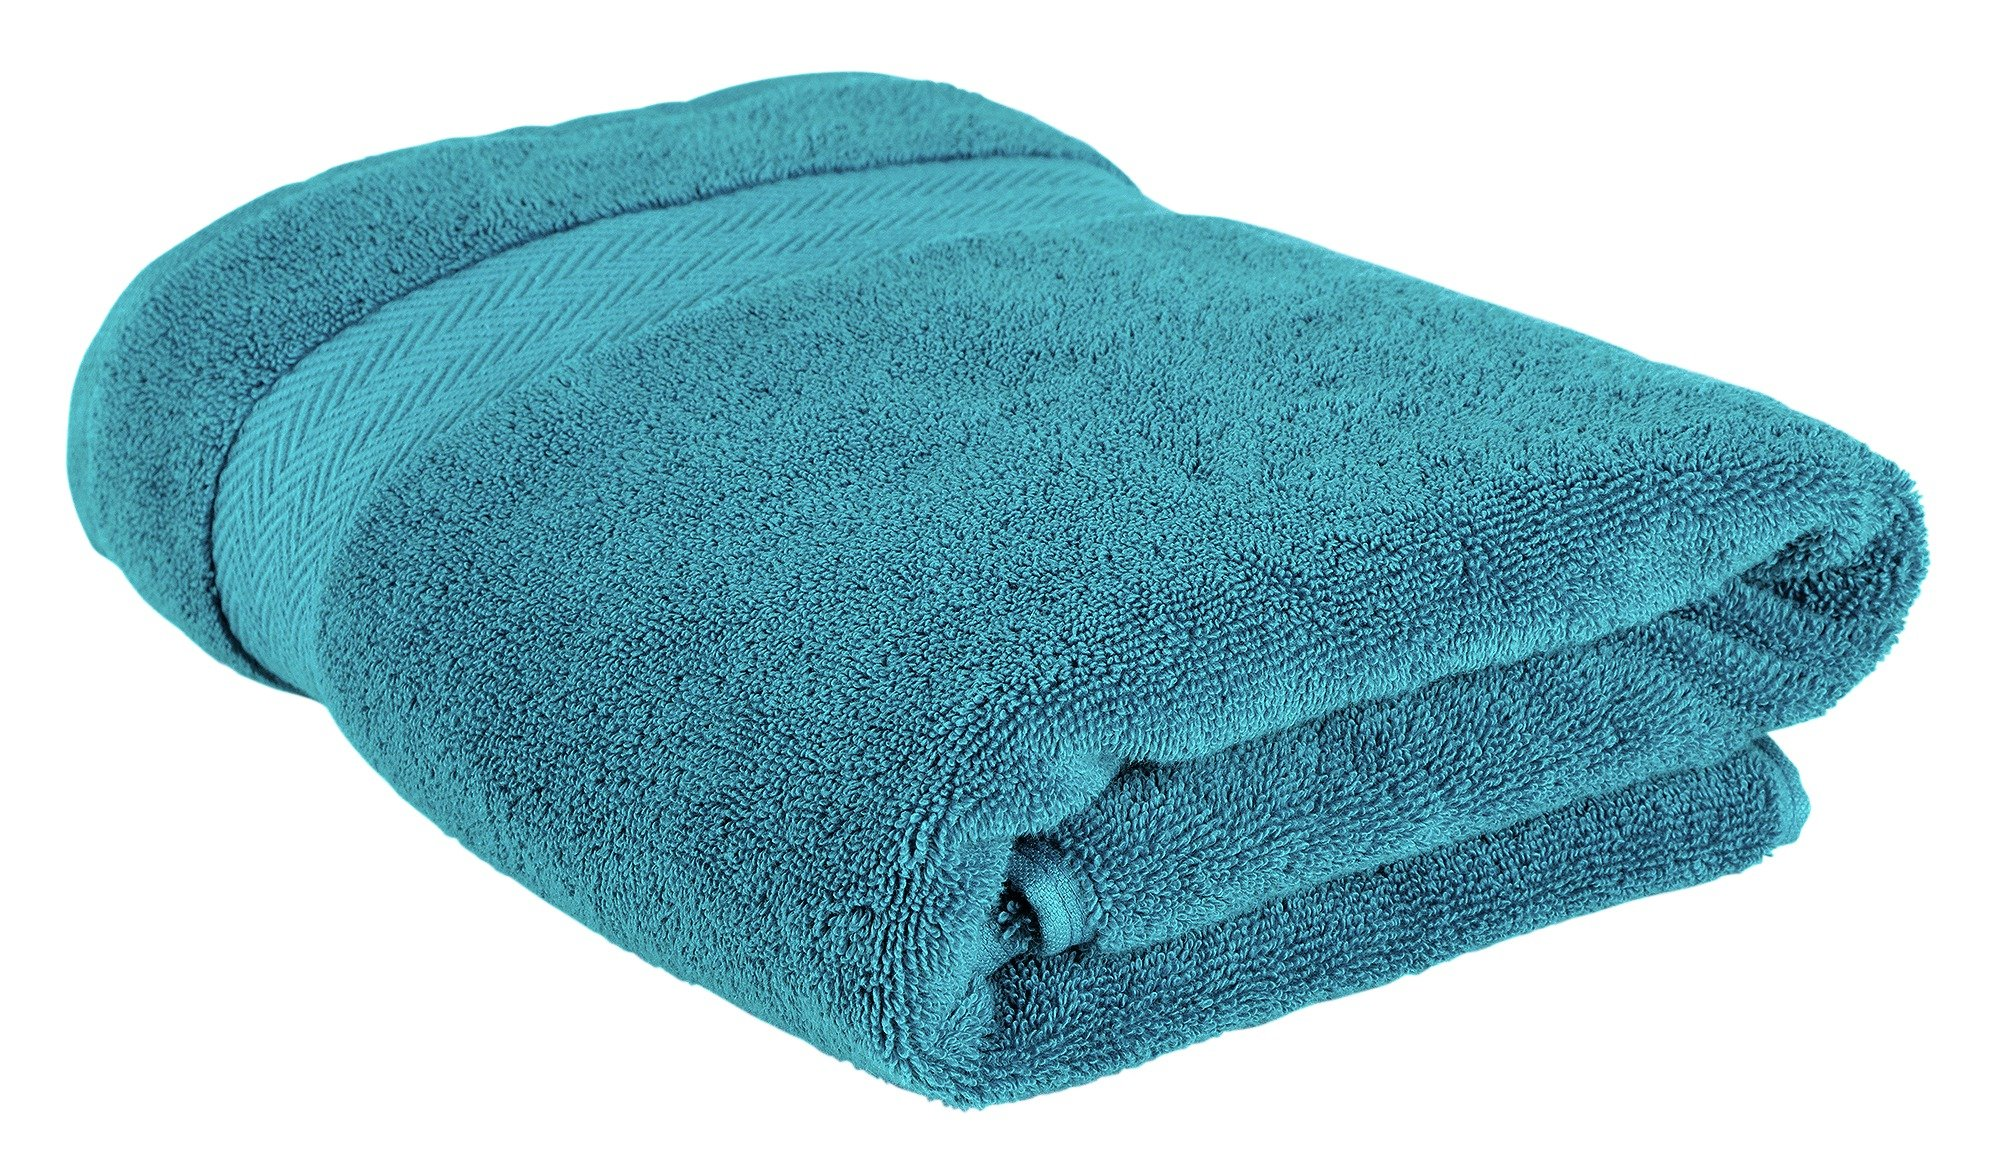 Kingsley Hygro Bath Sheet - Aqua